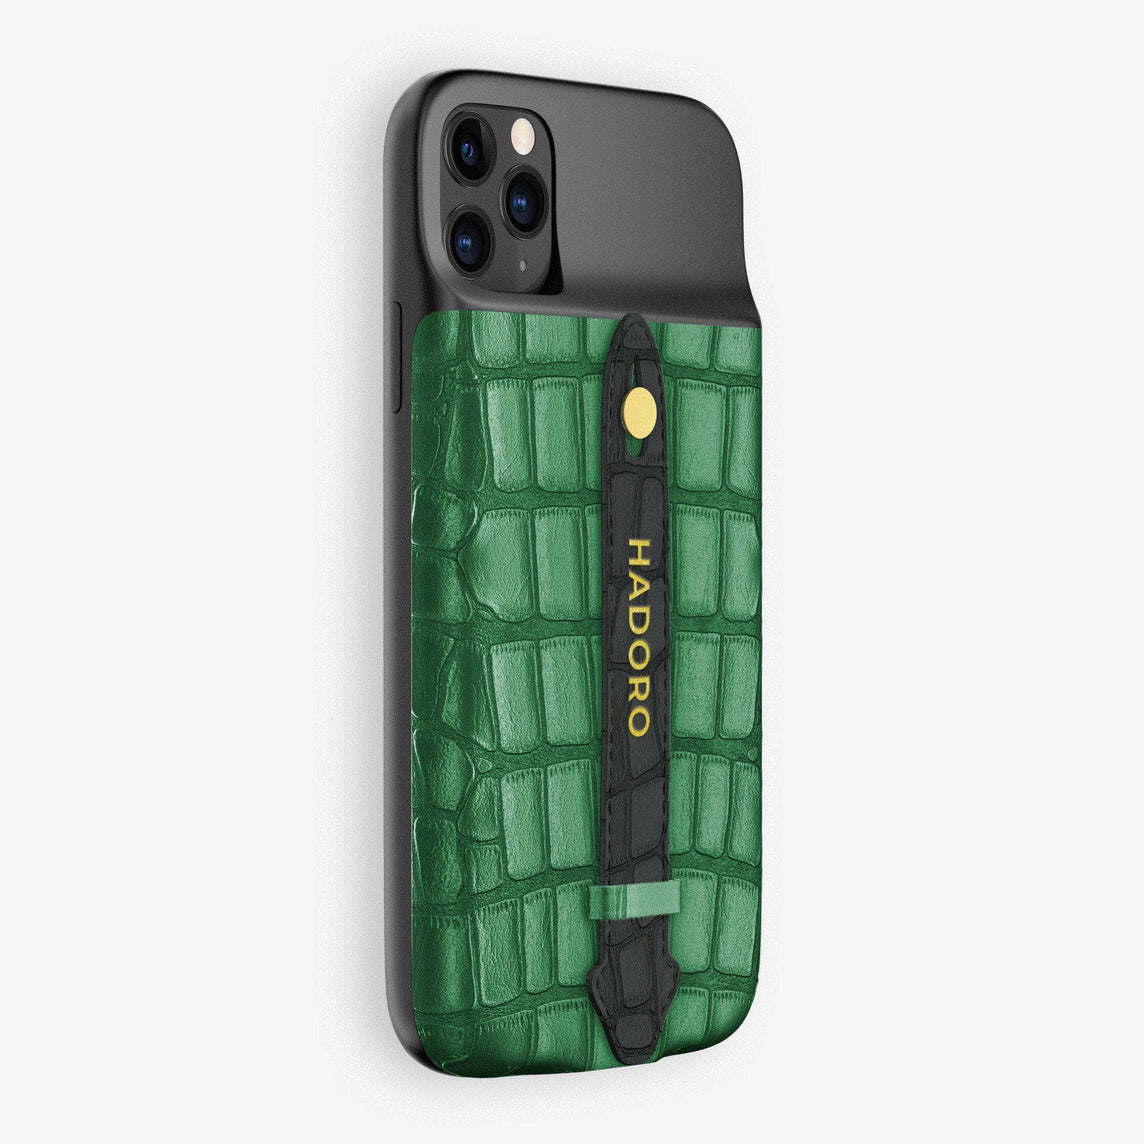 Alligator Battery Finger Case for iPhone 11 Pro Max | Green Emerald/Black - Yellow Gold